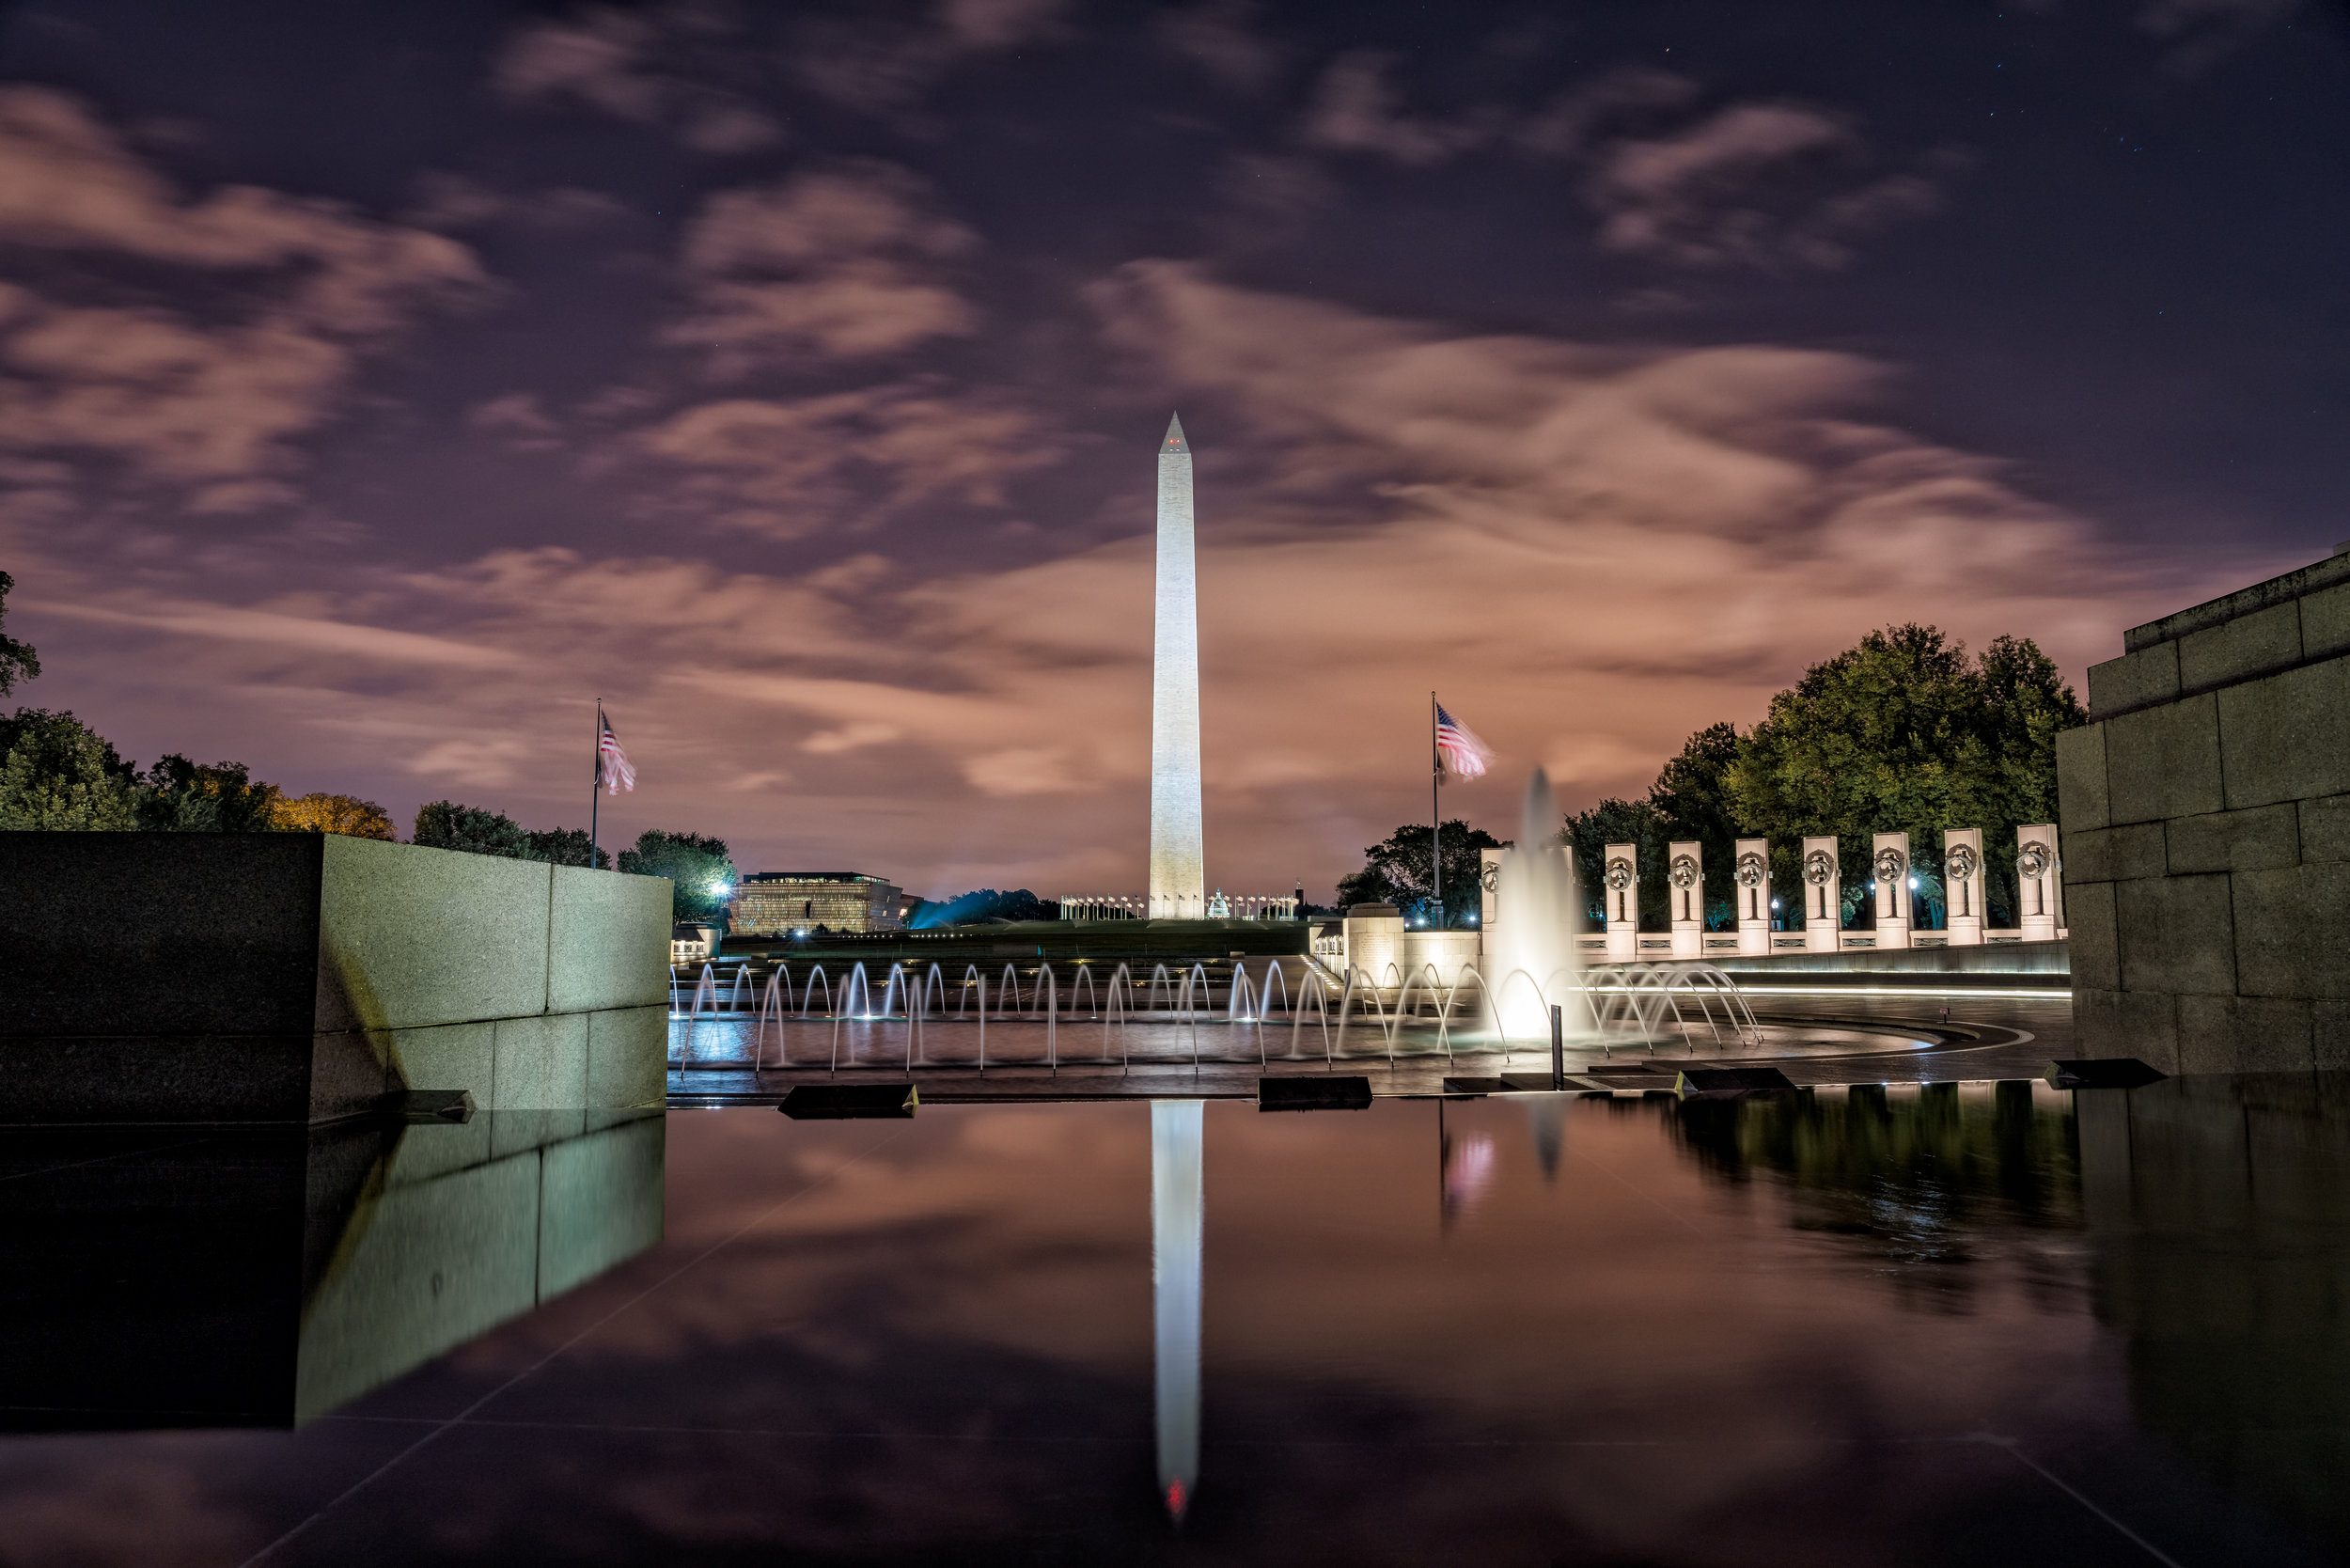 From the Reflecting pool side of the World War II Memorial around 5:20am